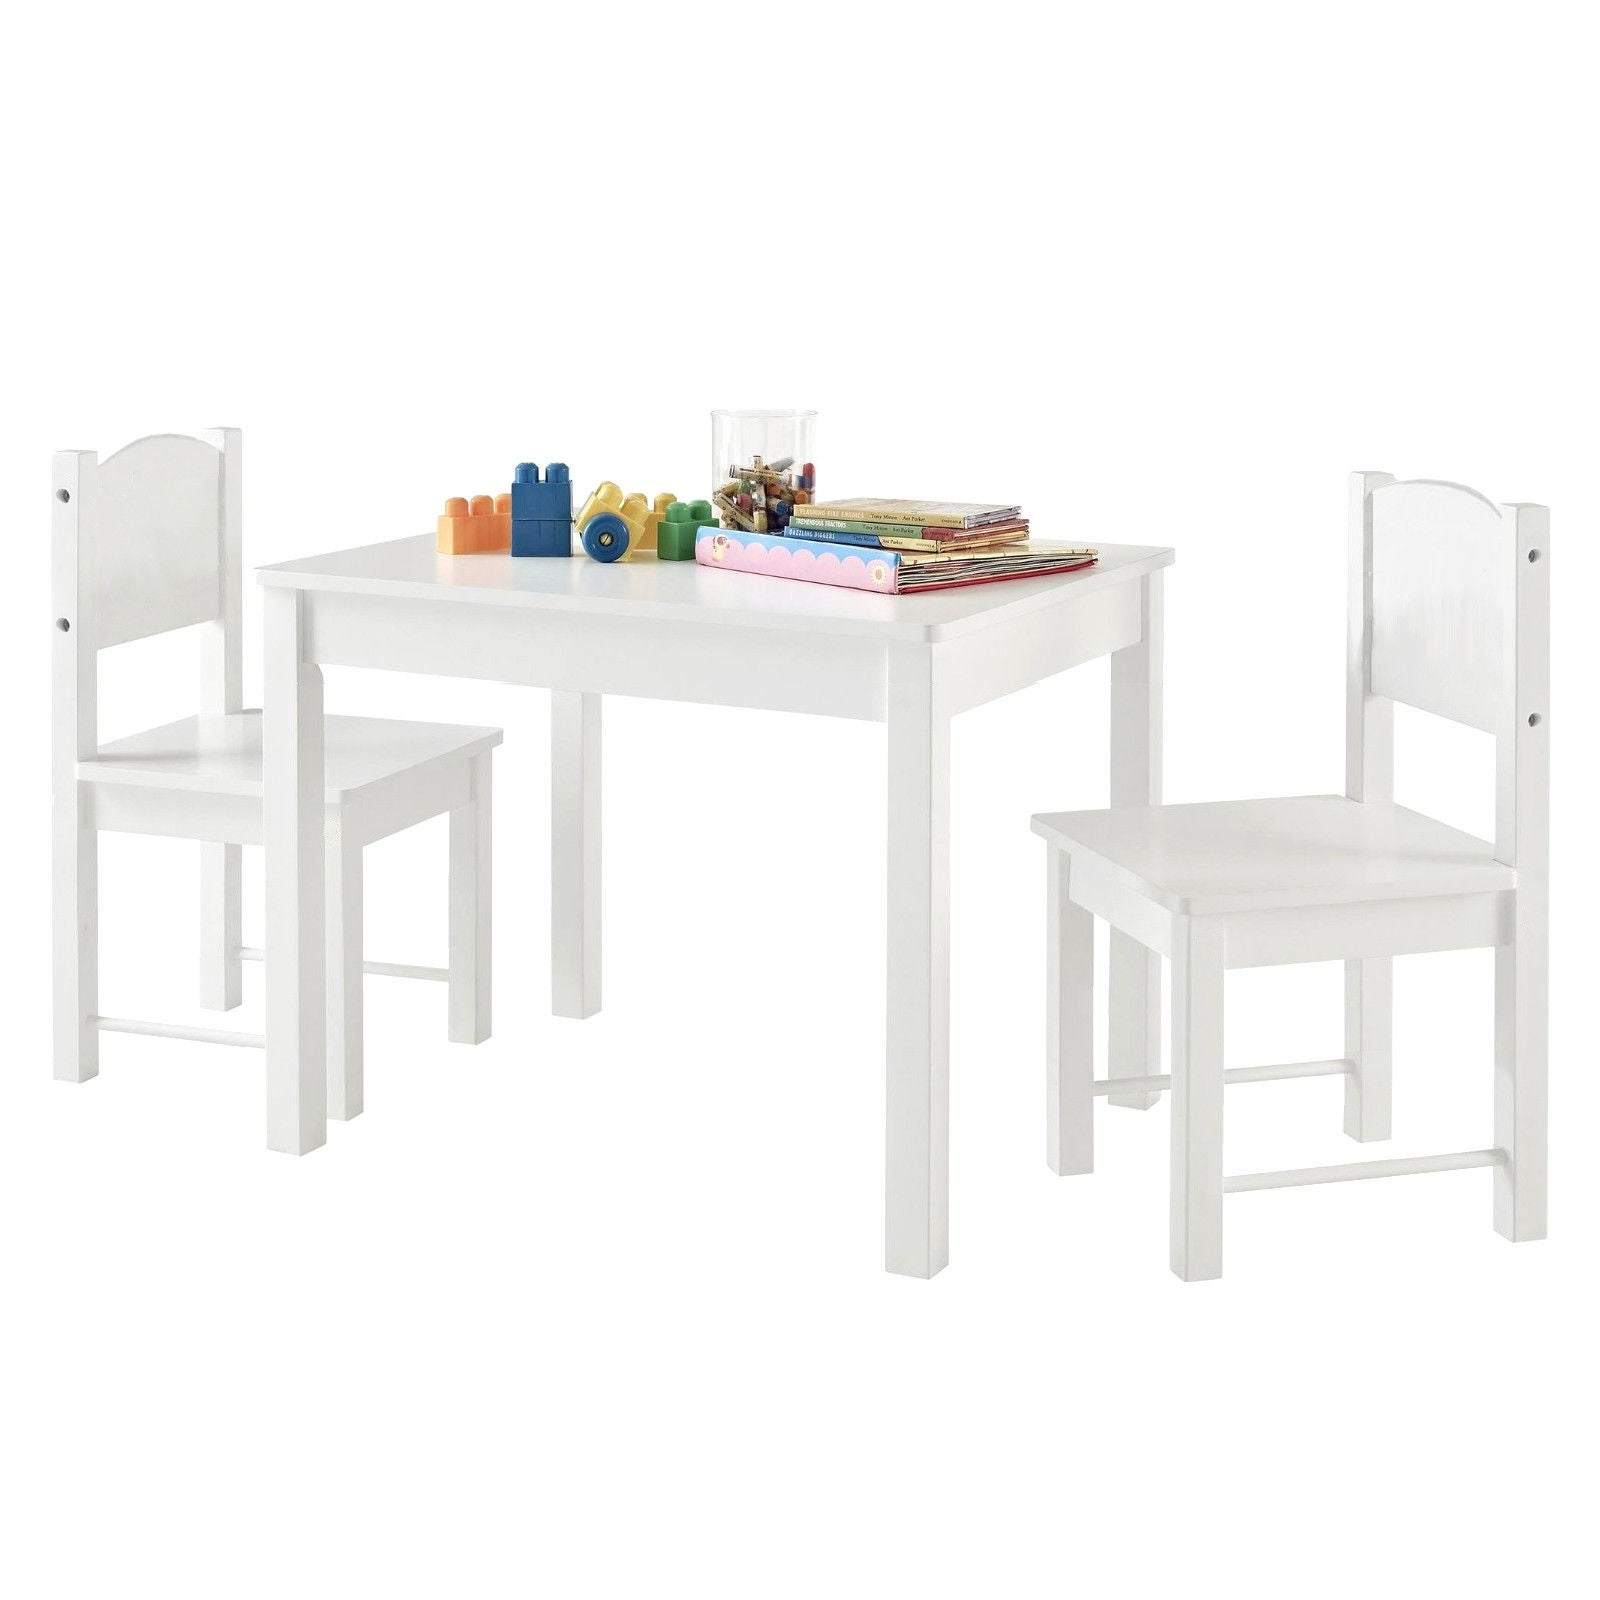 Amazing Wooden Kids Table Sturdy And Entertainment Table Set With 2 Chairs White Creativecarmelina Interior Chair Design Creativecarmelinacom